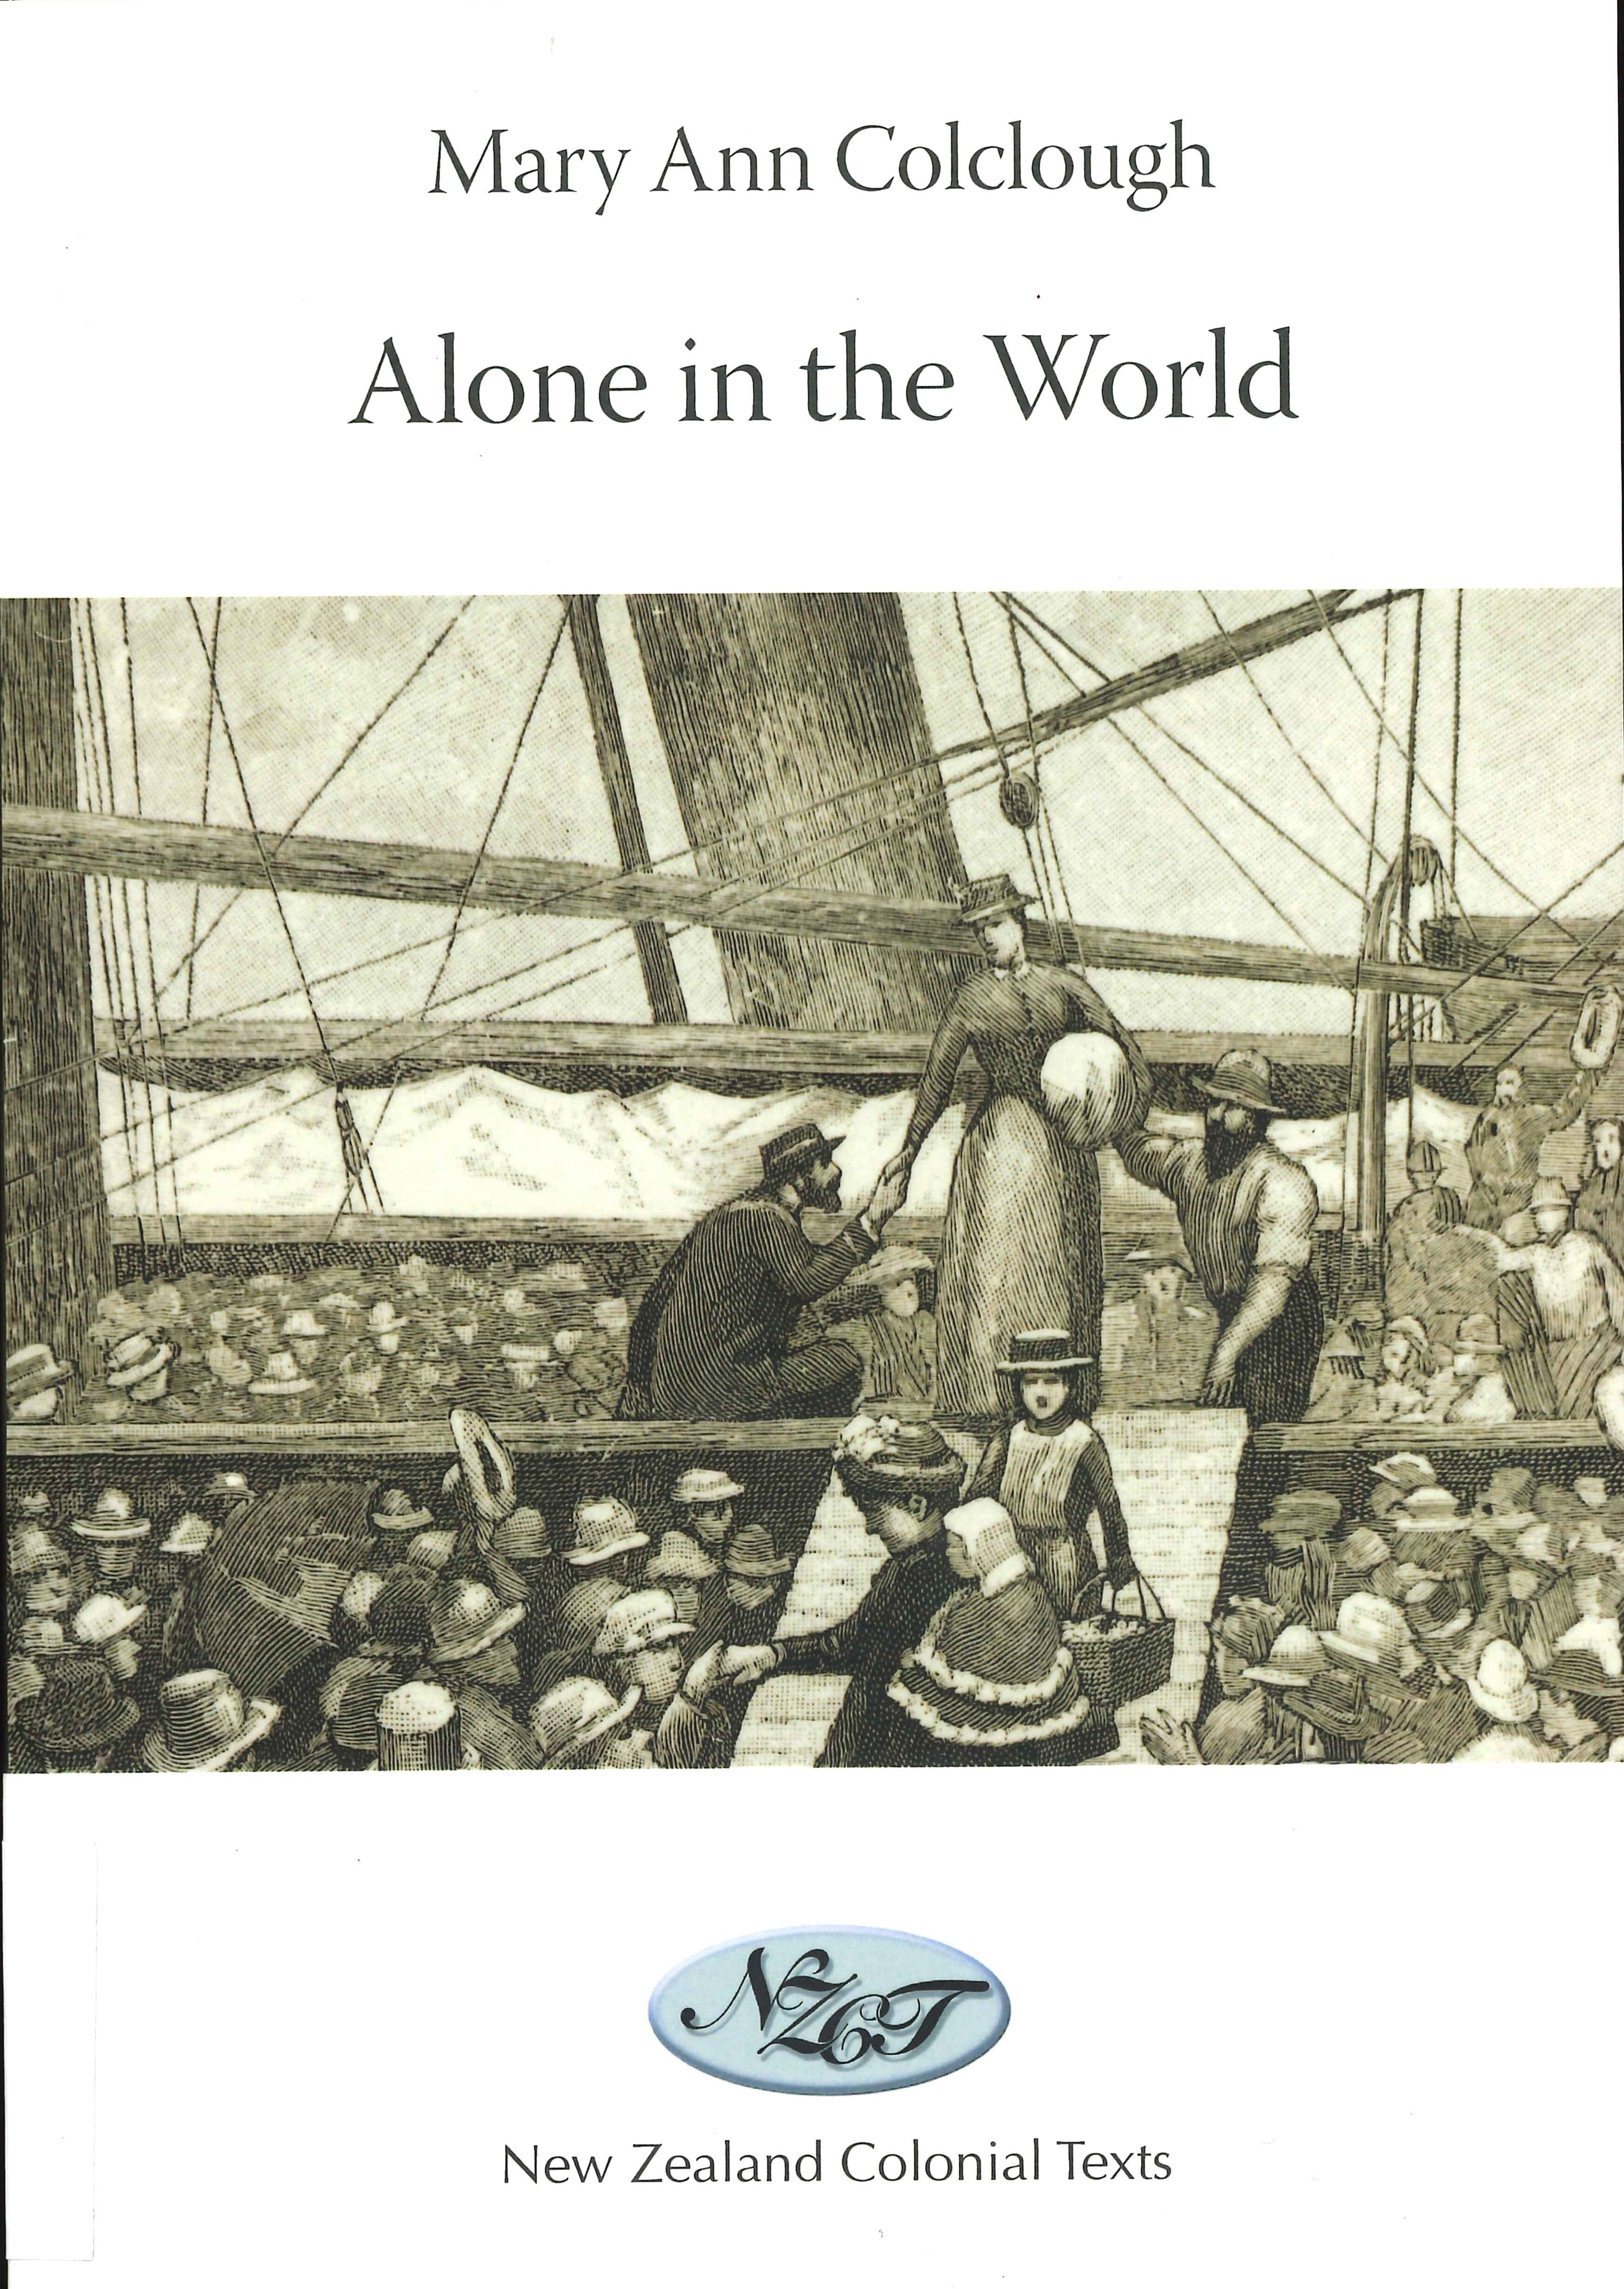 Mary Ann Colclough. Alone in the world: a tale of New Zealand. Dunedin: Department of English, University of Otago, 2017.